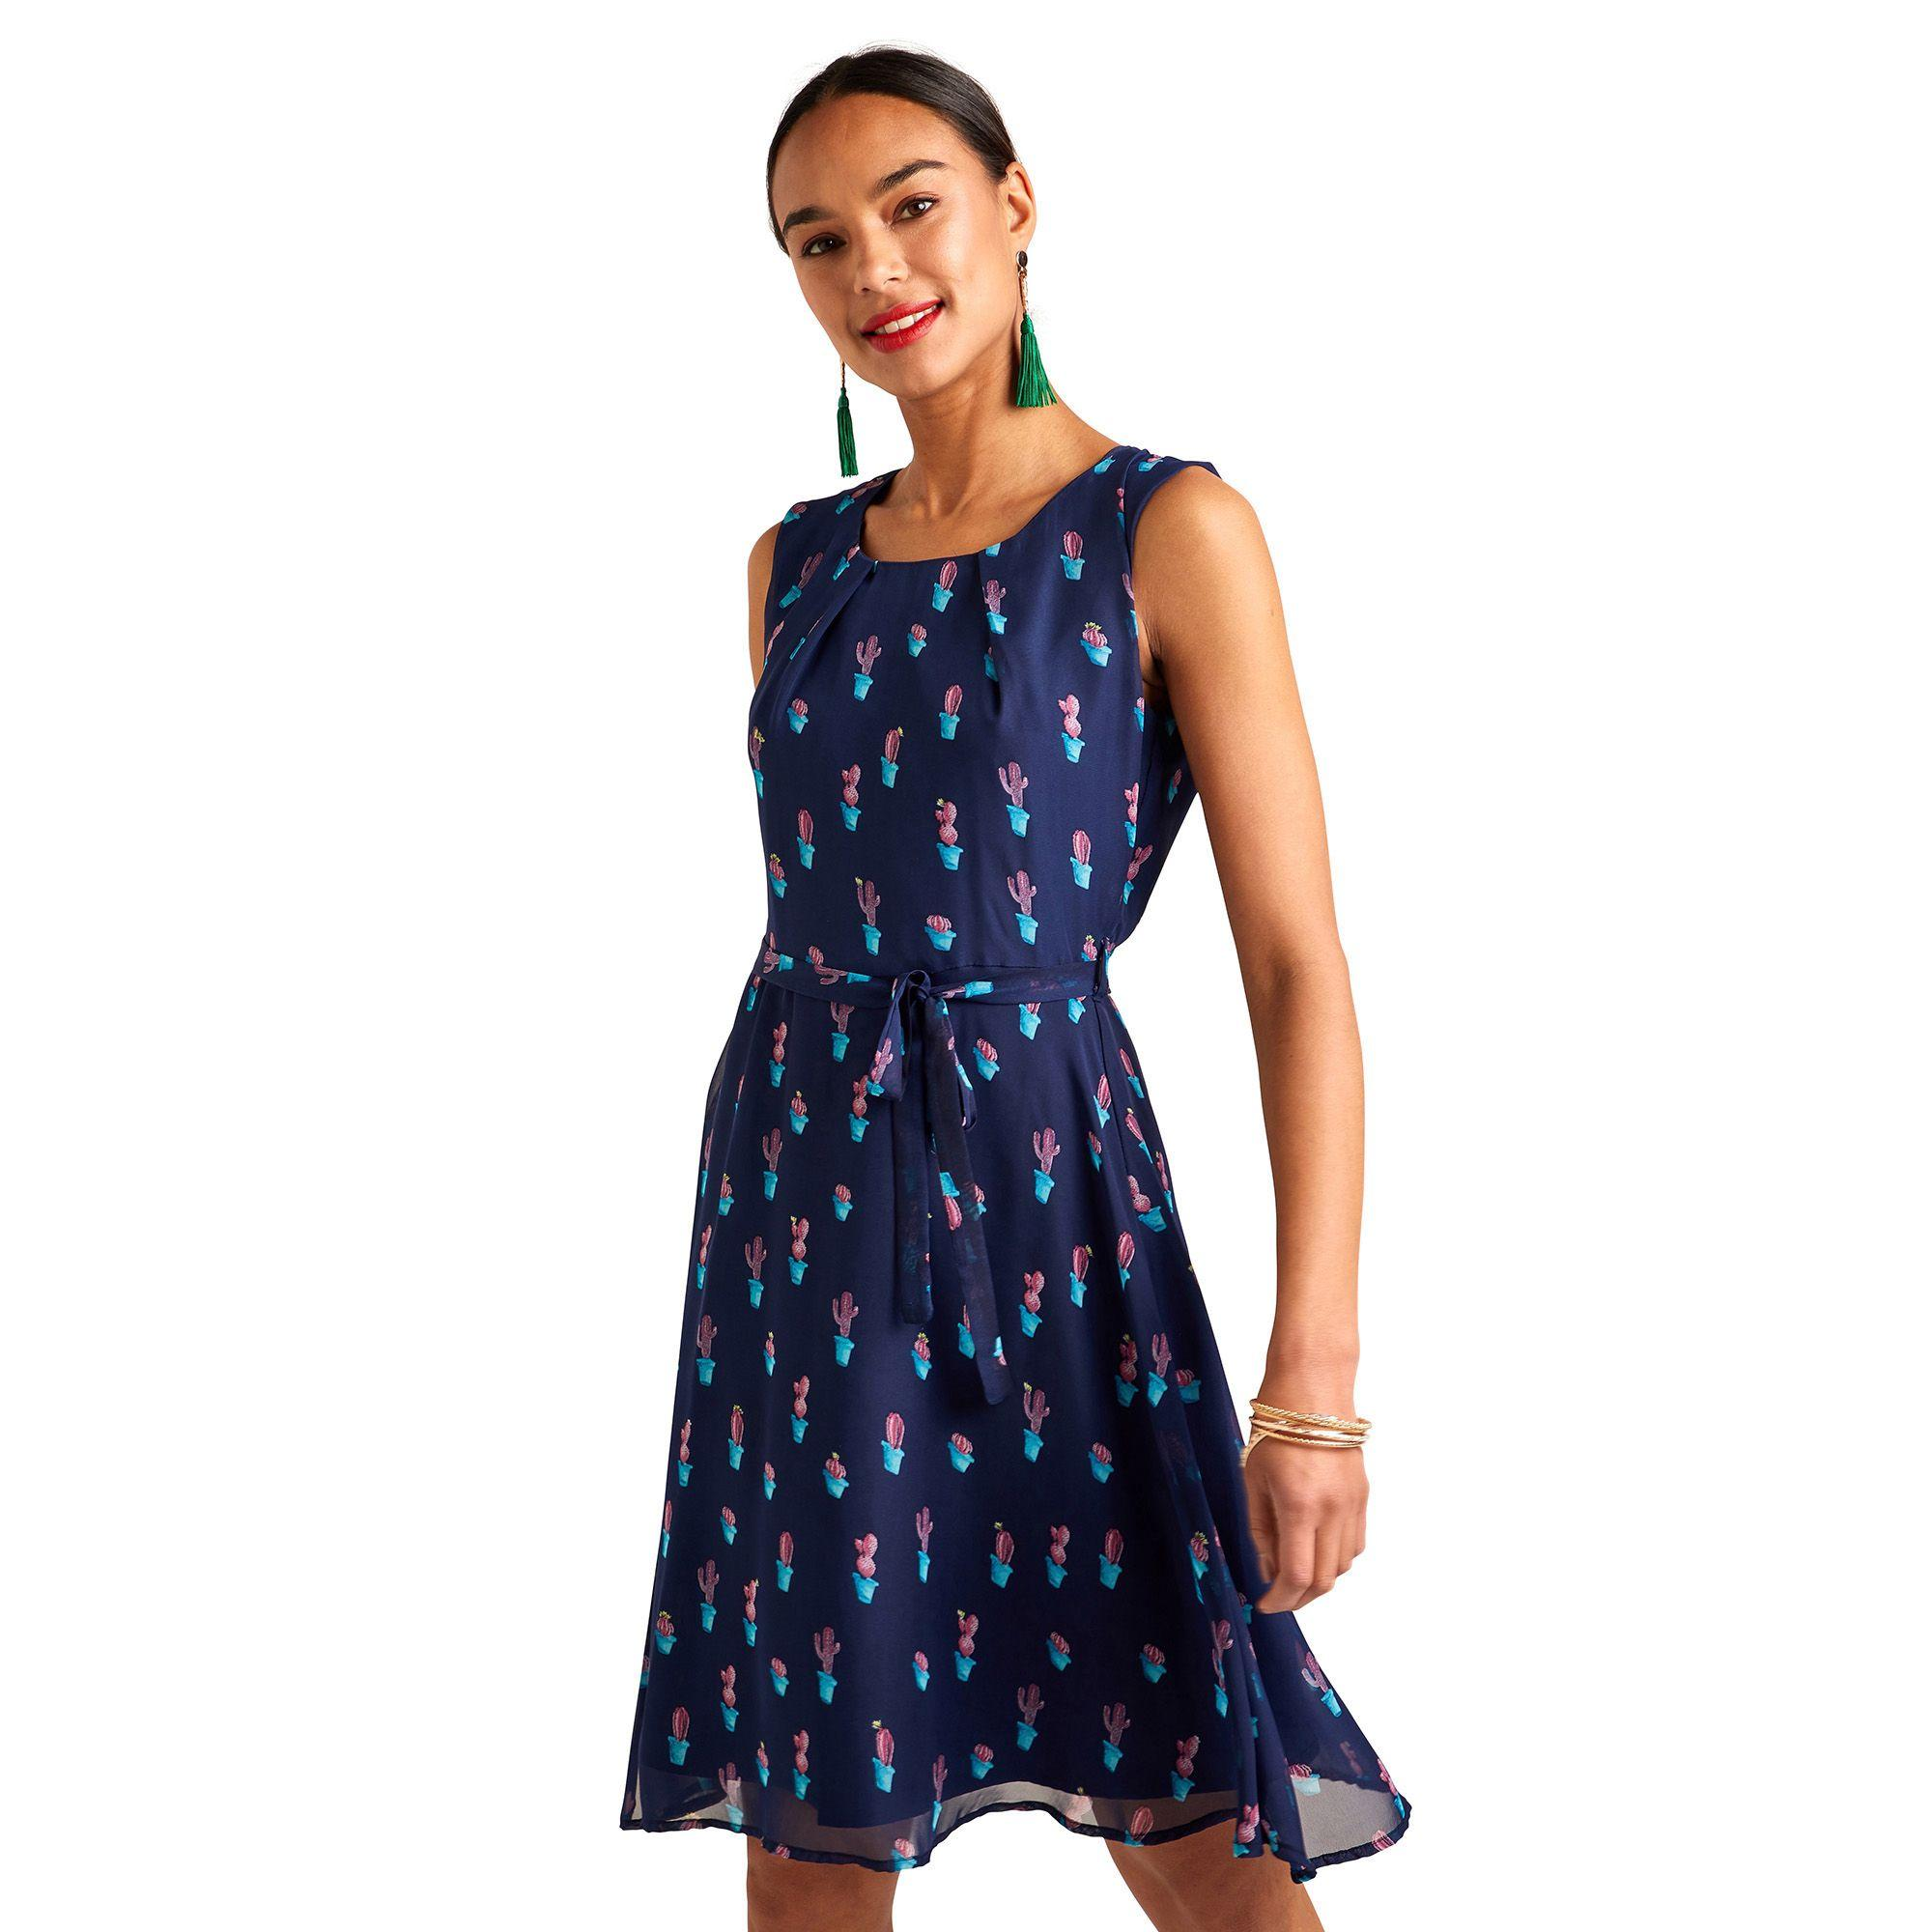 2629e9676756 Yumi' Navy Cactus Print Skater Dress in Blue - Lyst